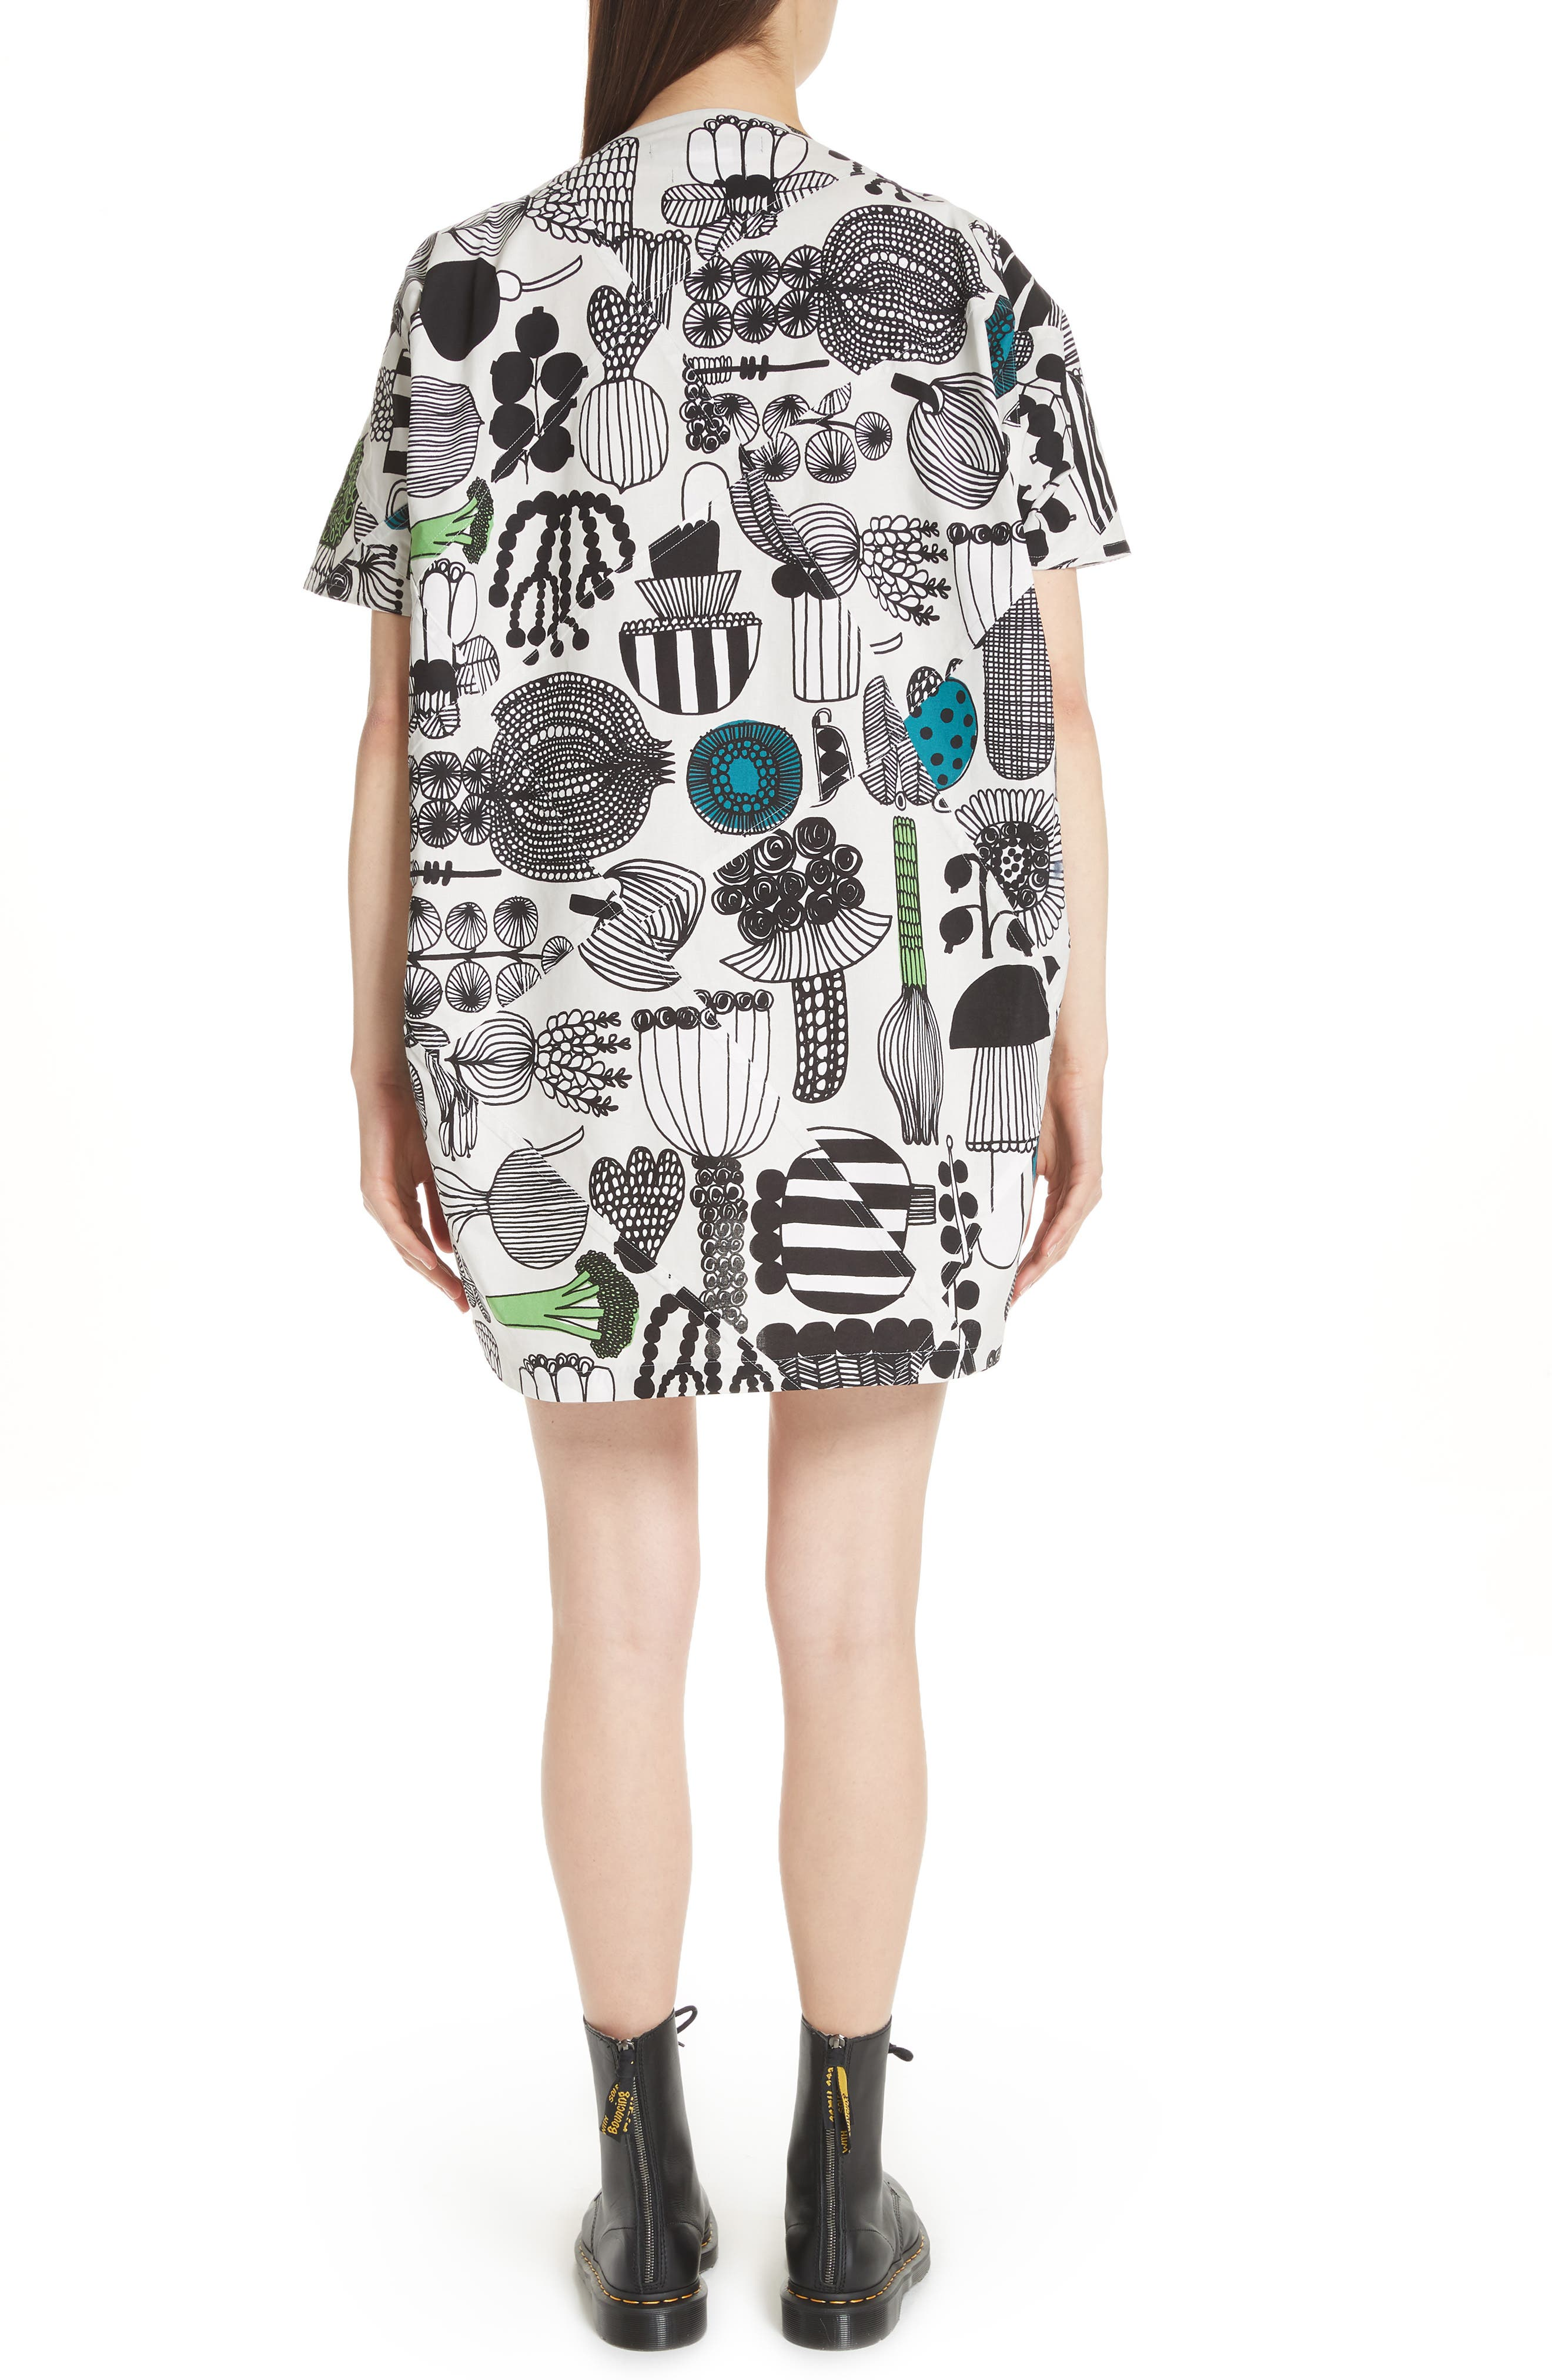 Vegetable Print Dress,                             Alternate thumbnail 2, color,                             Gry/ Grn/ Blk